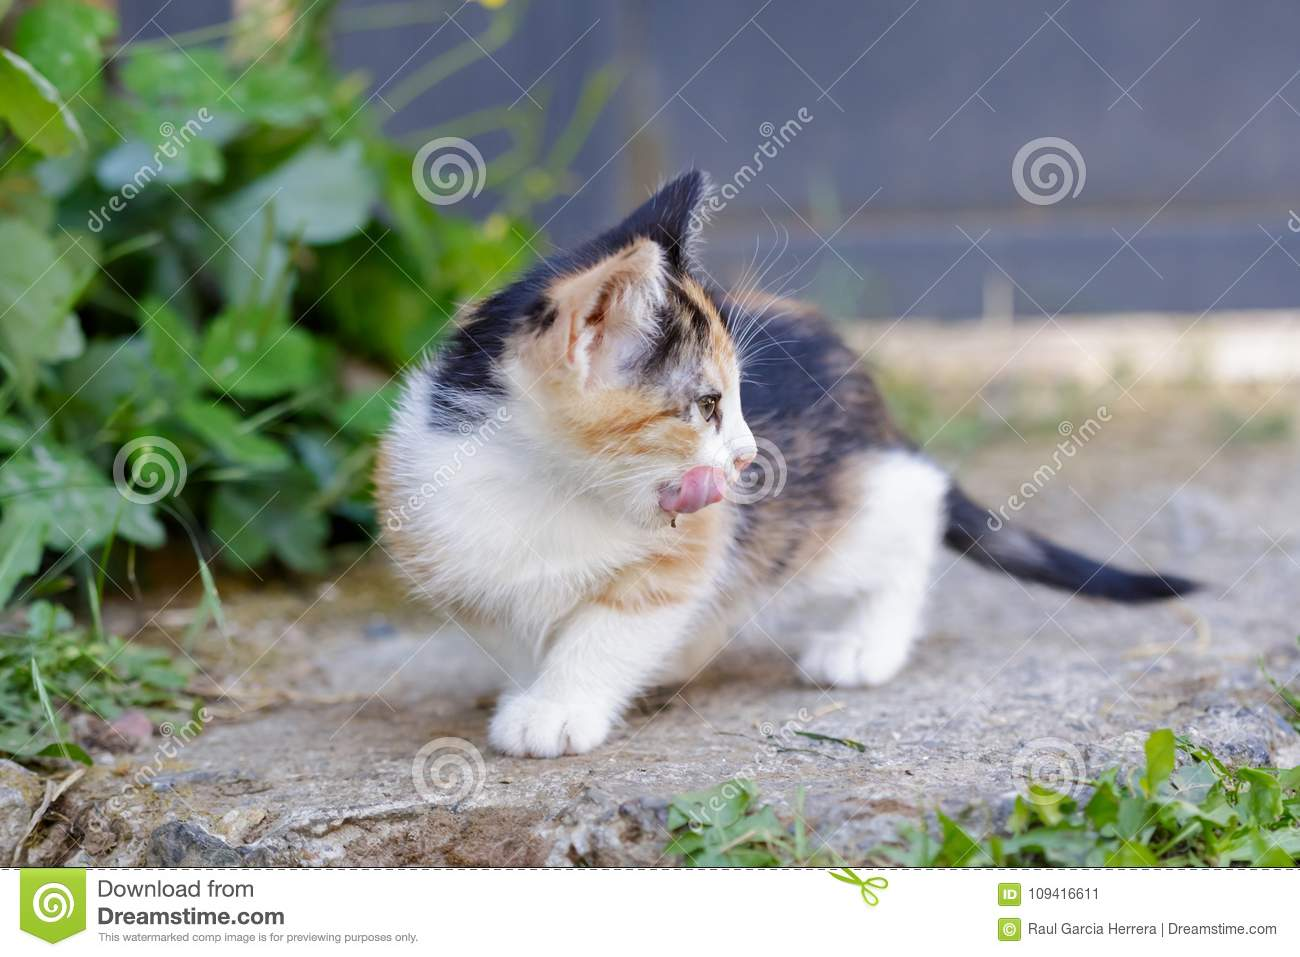 Cute Kitten licking her face outdoor at Summer. Small Cat Sitting In Grass.